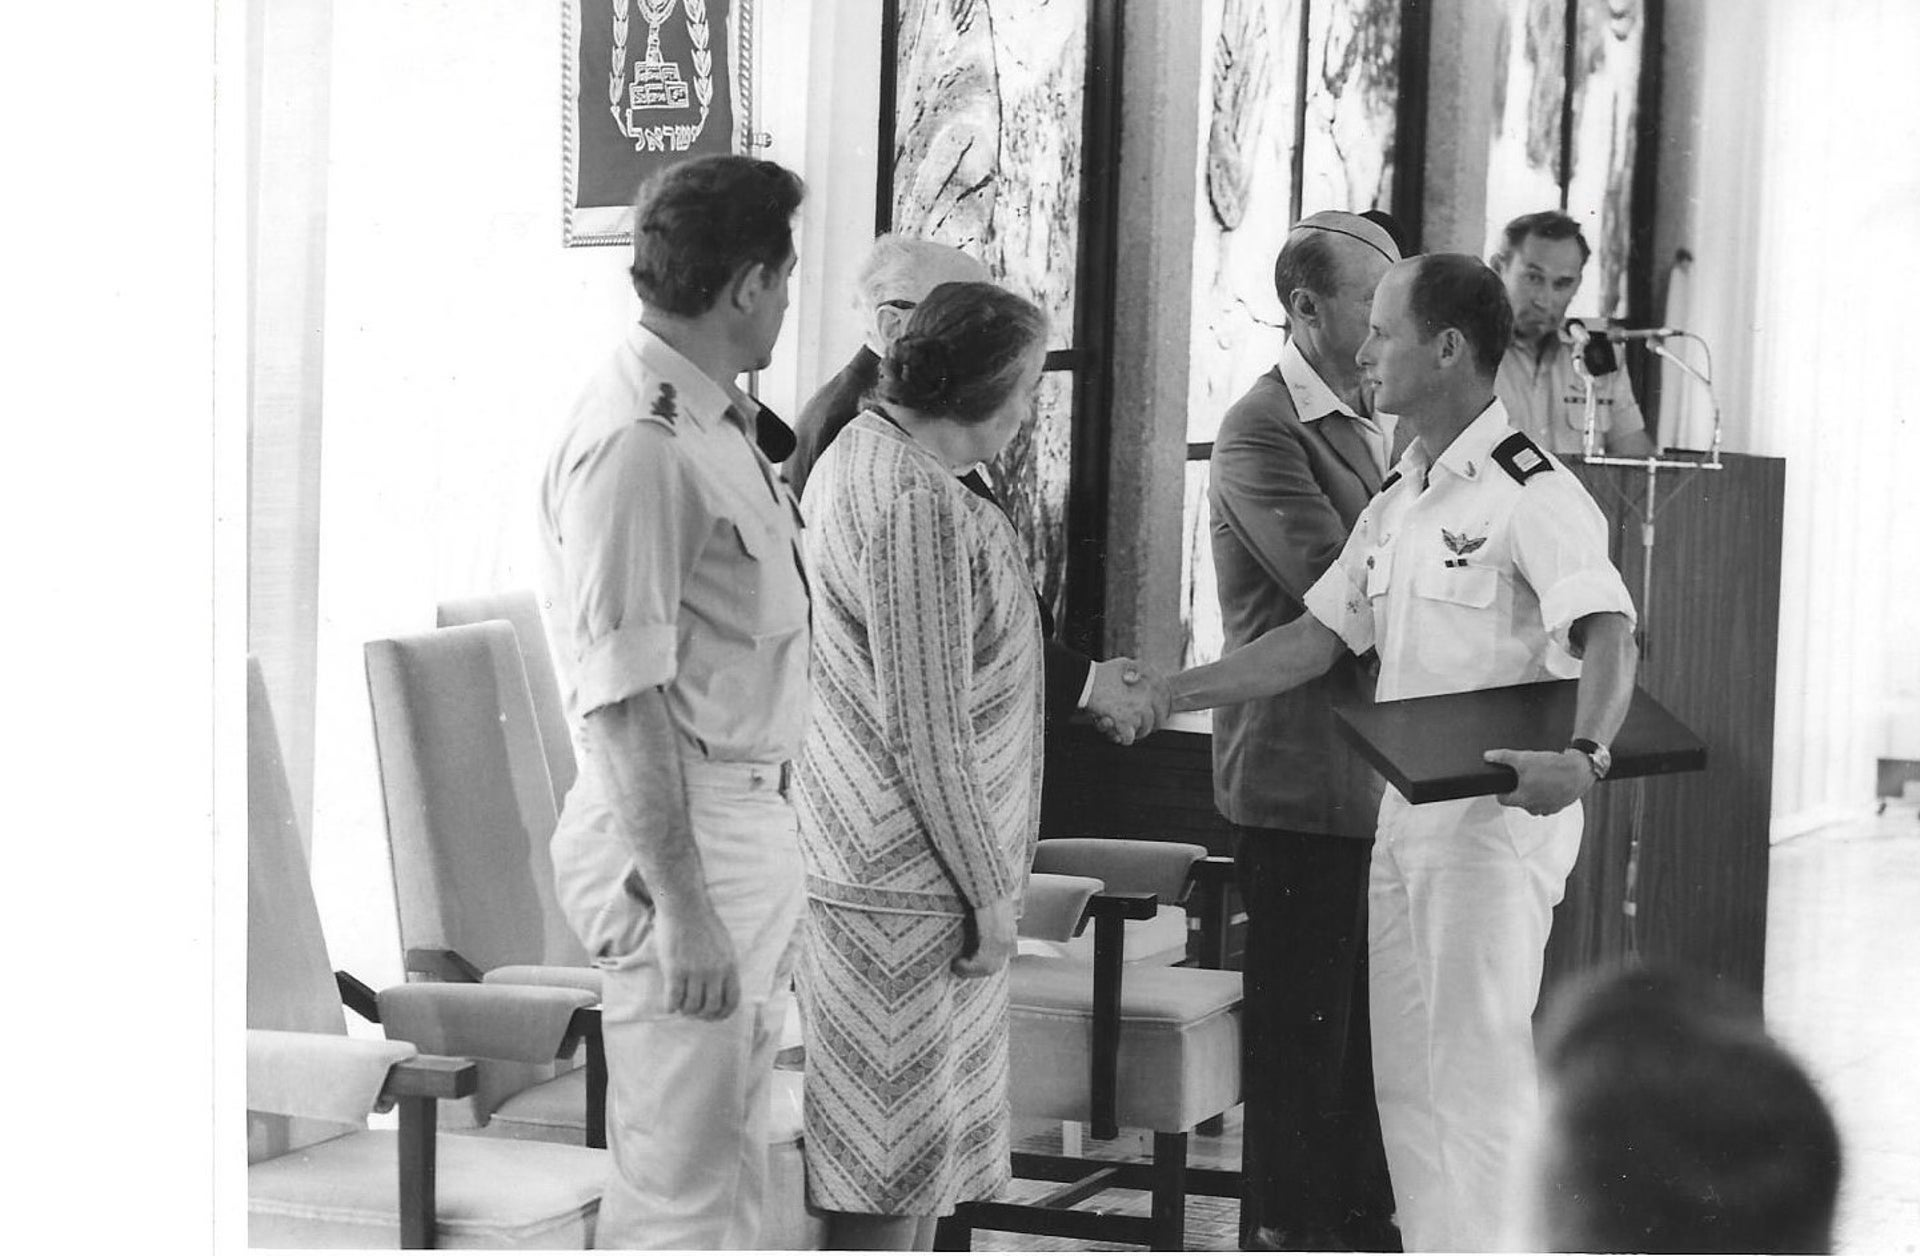 Ami Ayalon receives the Medal of Valor from Prime Minister Golda Meir in 1973.